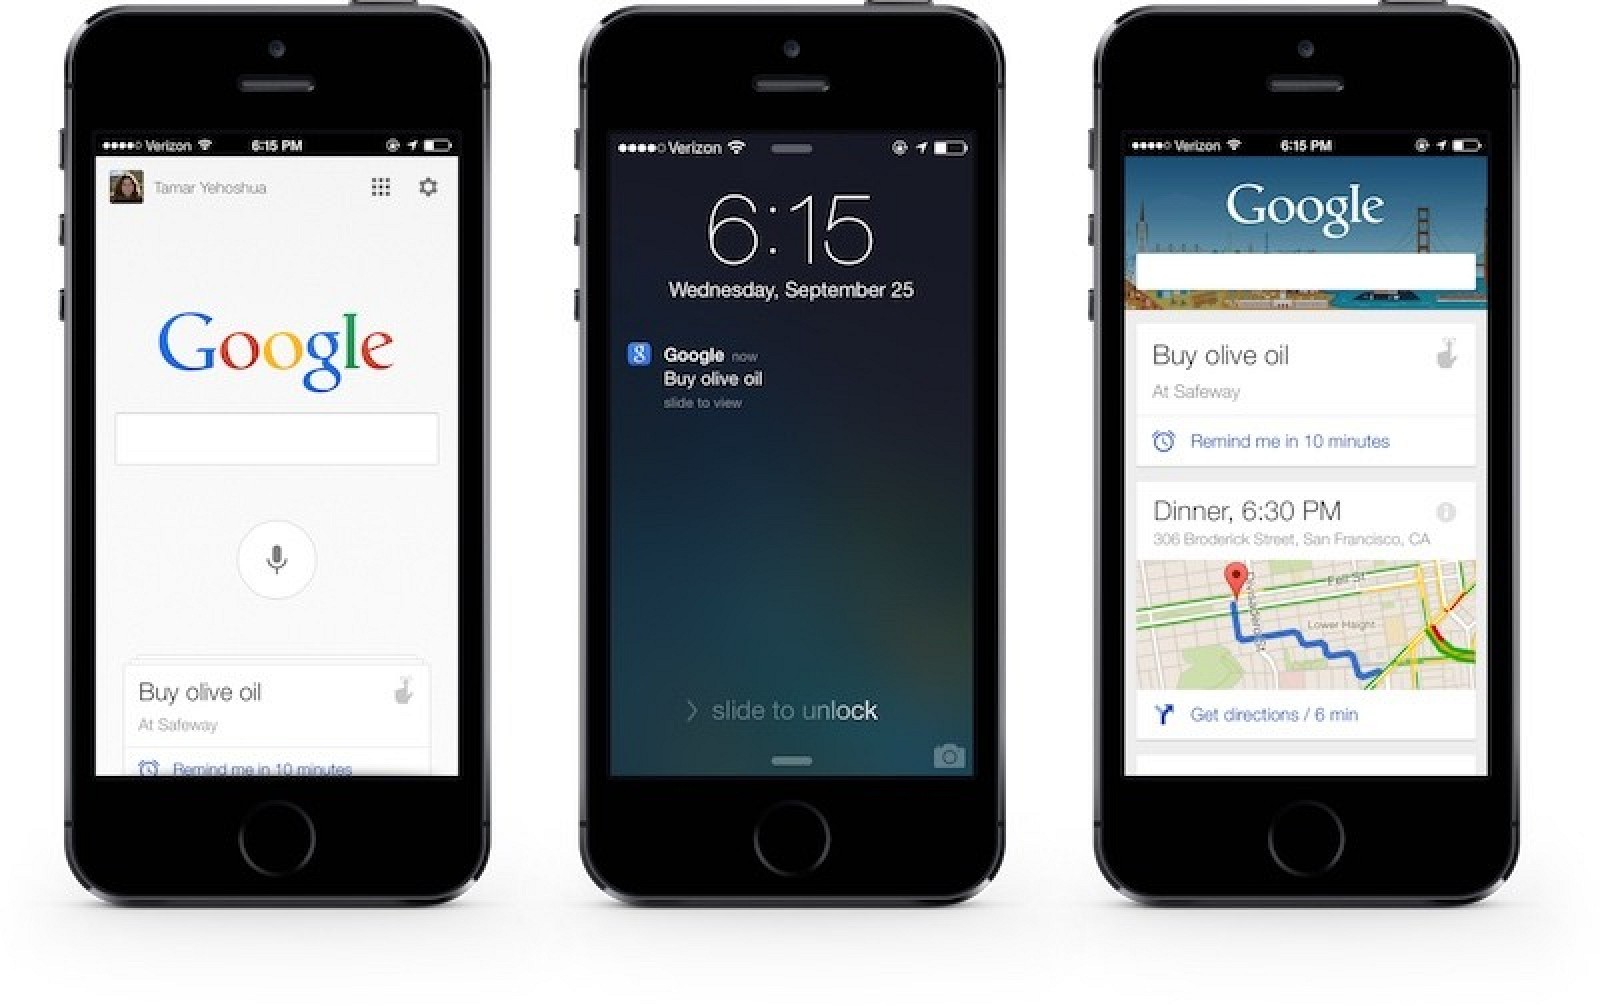 google image search on iphone for ios gains accelerated mobile pages support 17001